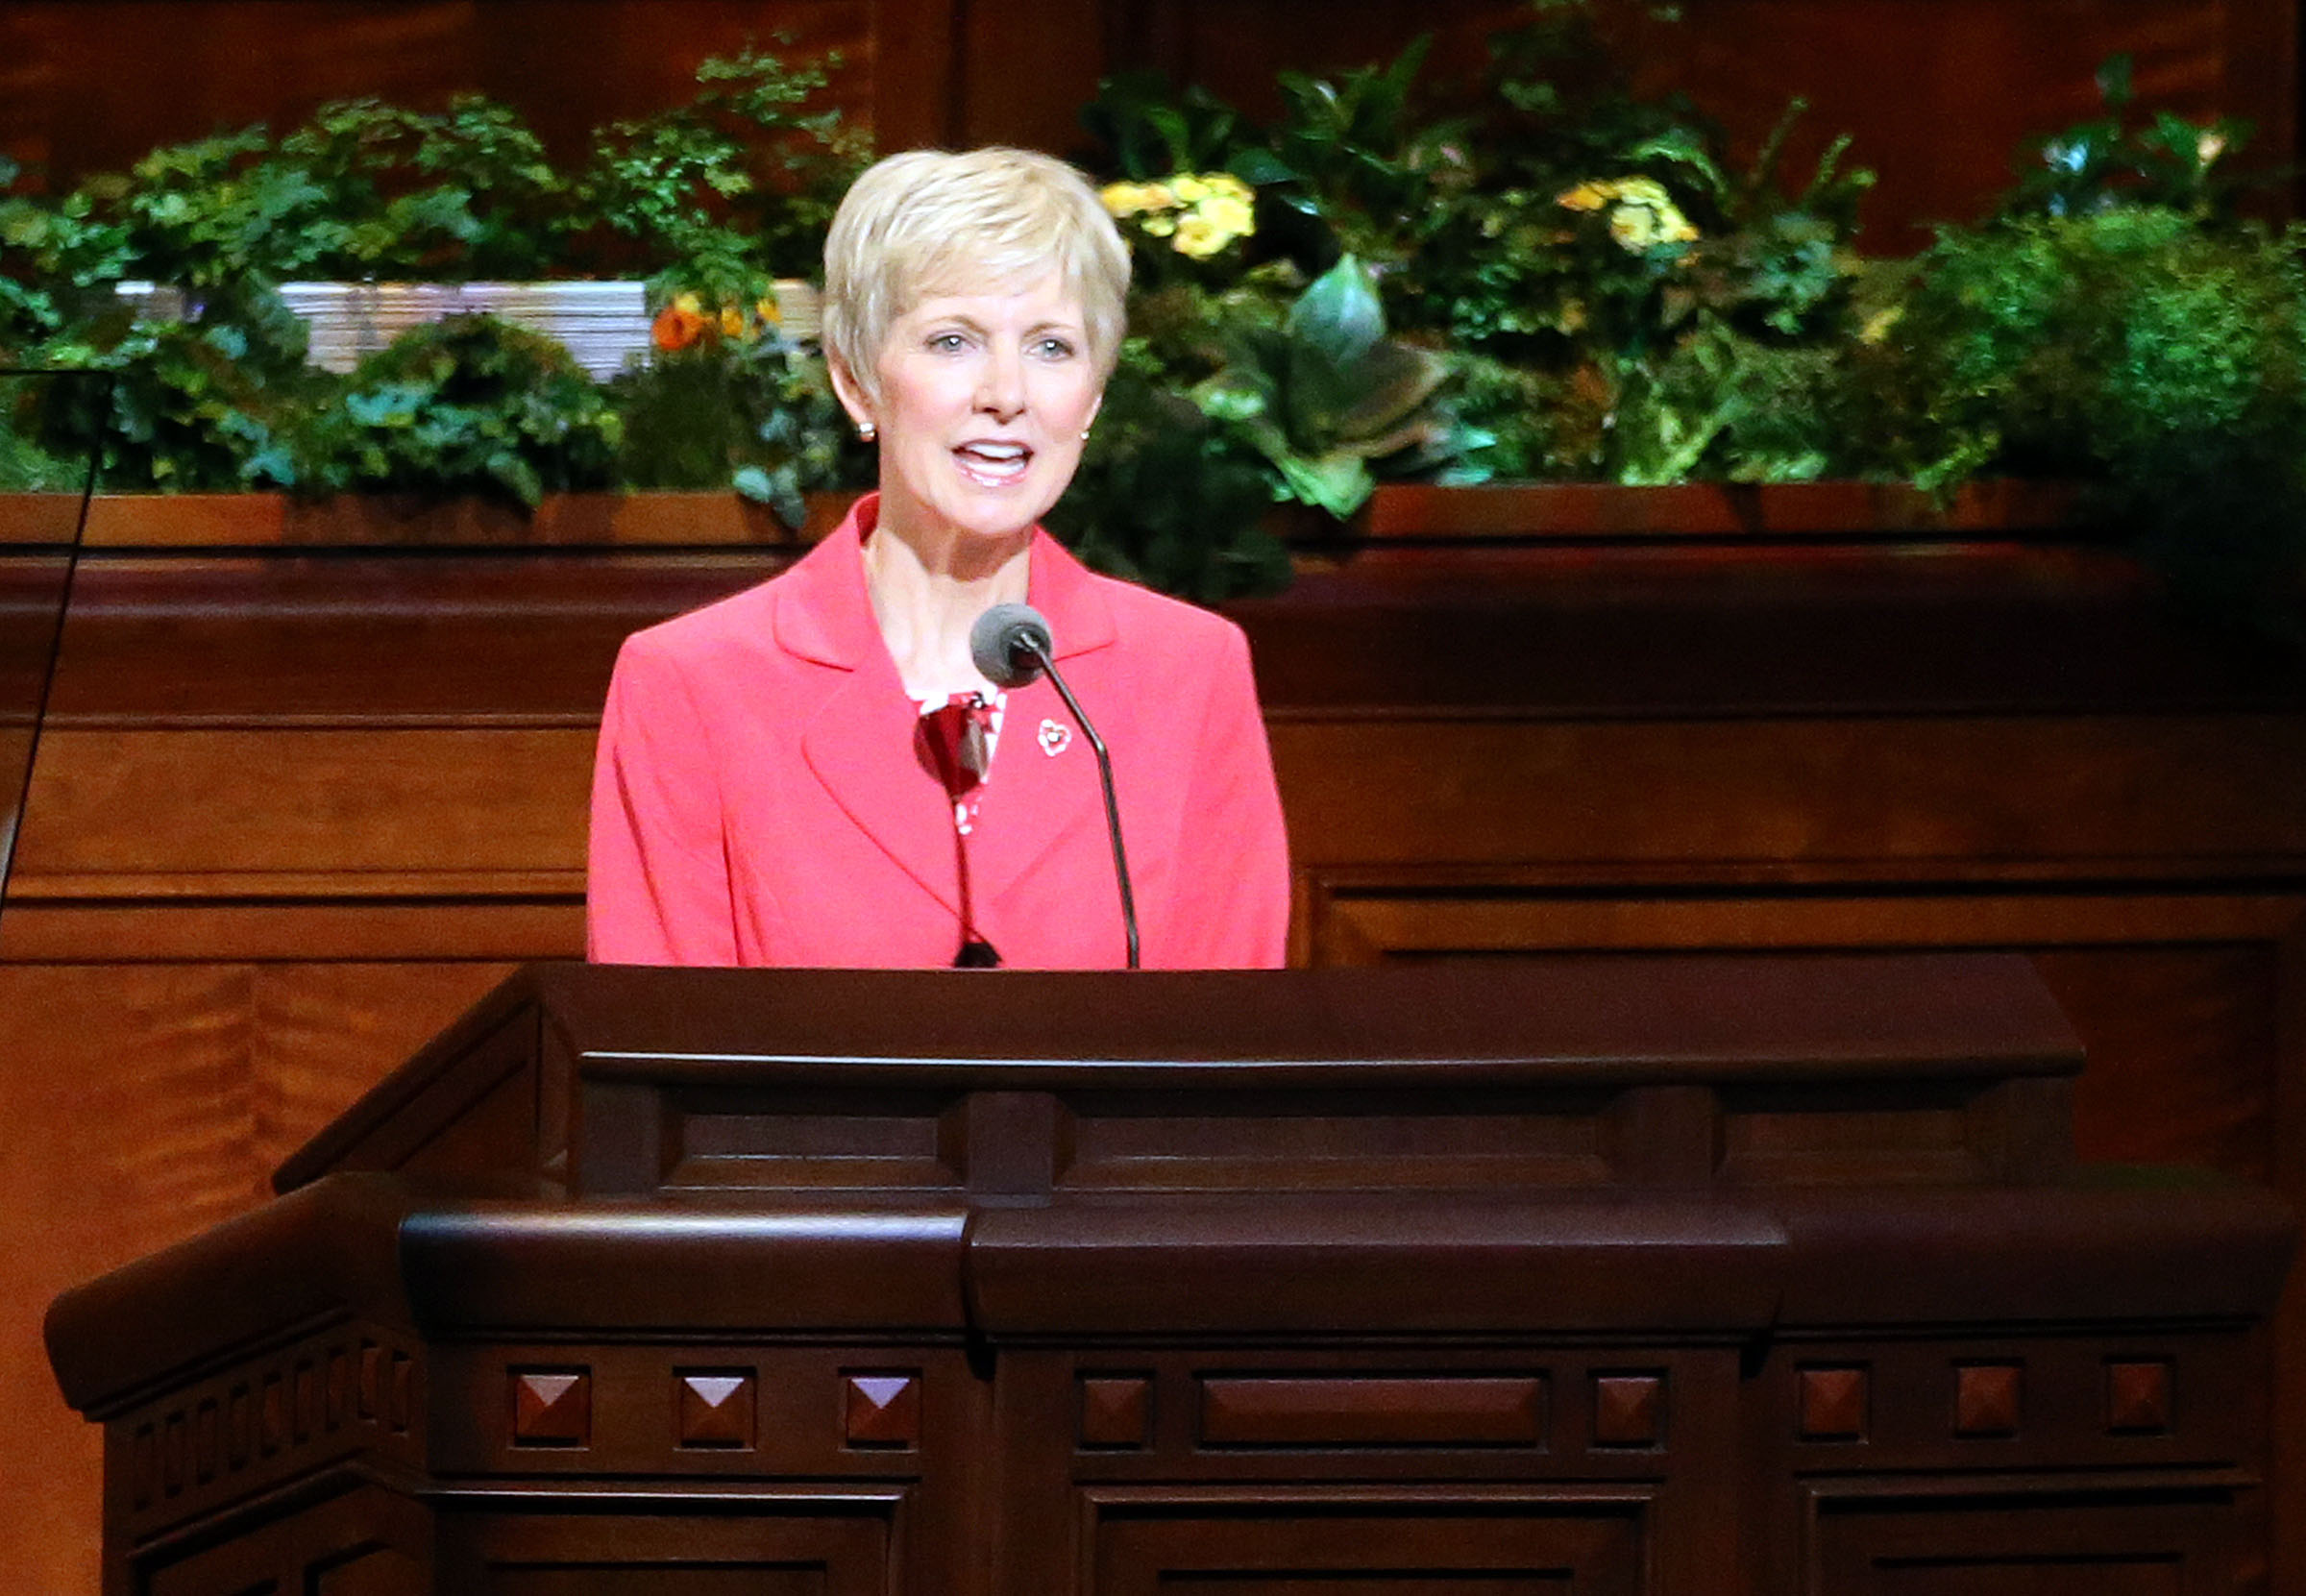 Sister Jean B. Bingham, Relief Society general president, speaks during the Sunday afternoon session of the 188th Annual General Conference of The Church of Jesus Christ of Latter-day Saints at the Conference Center in Salt Lake City on Sunday, April 1, 2018.